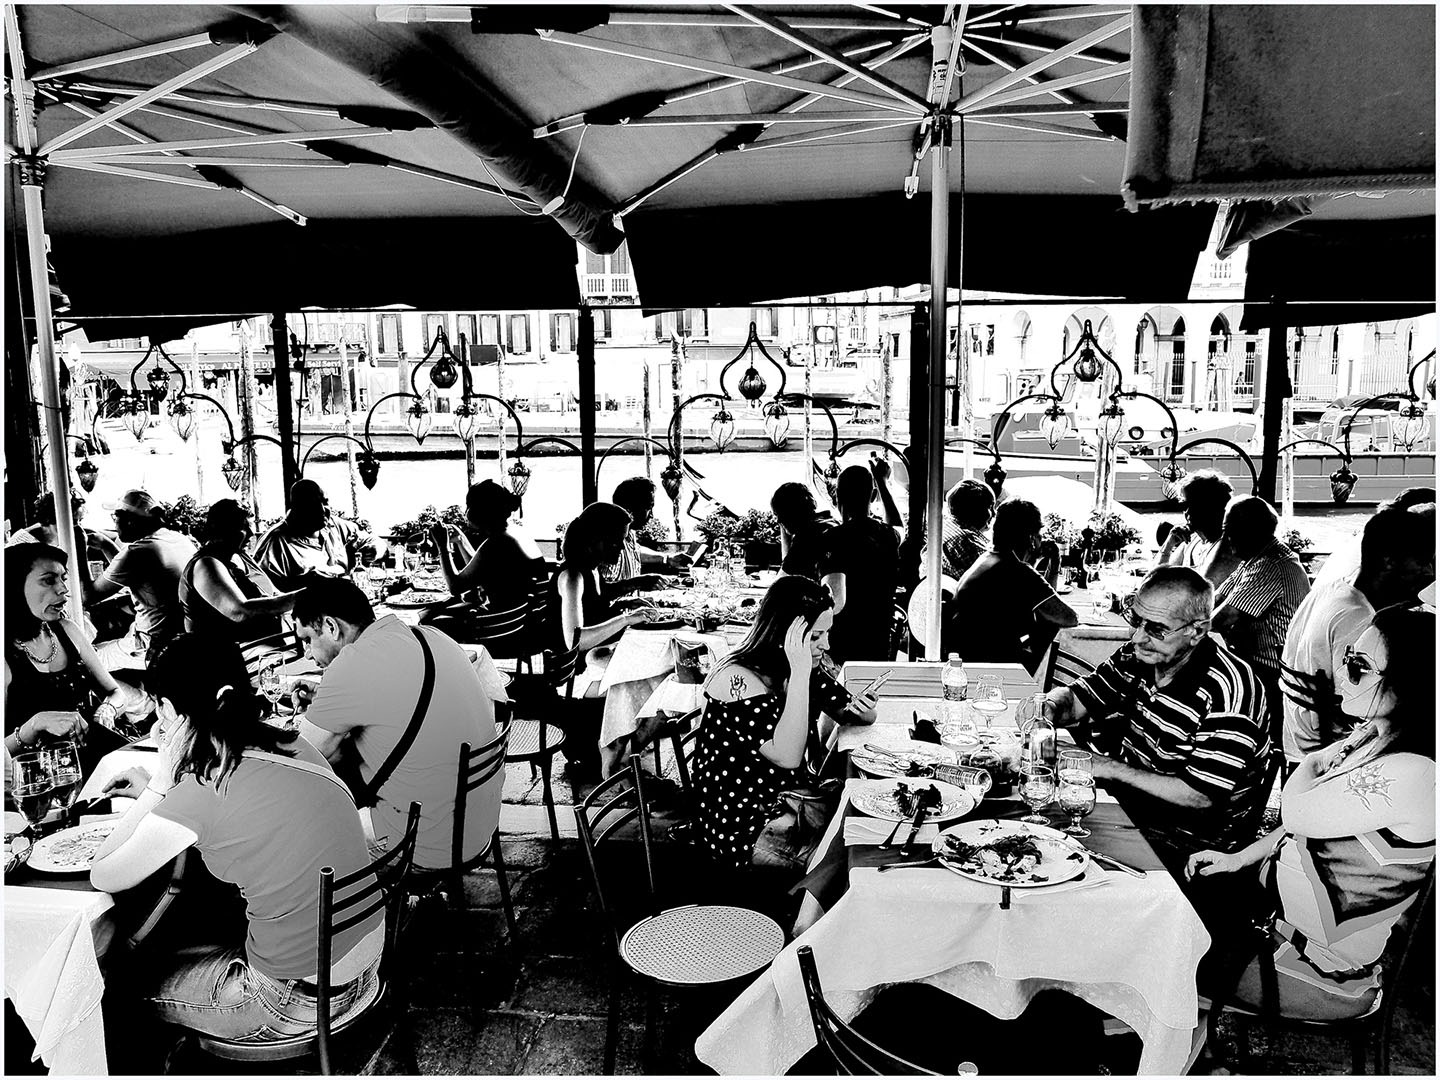 Table_Manners_in_Black_and_White_005_I15.8.51